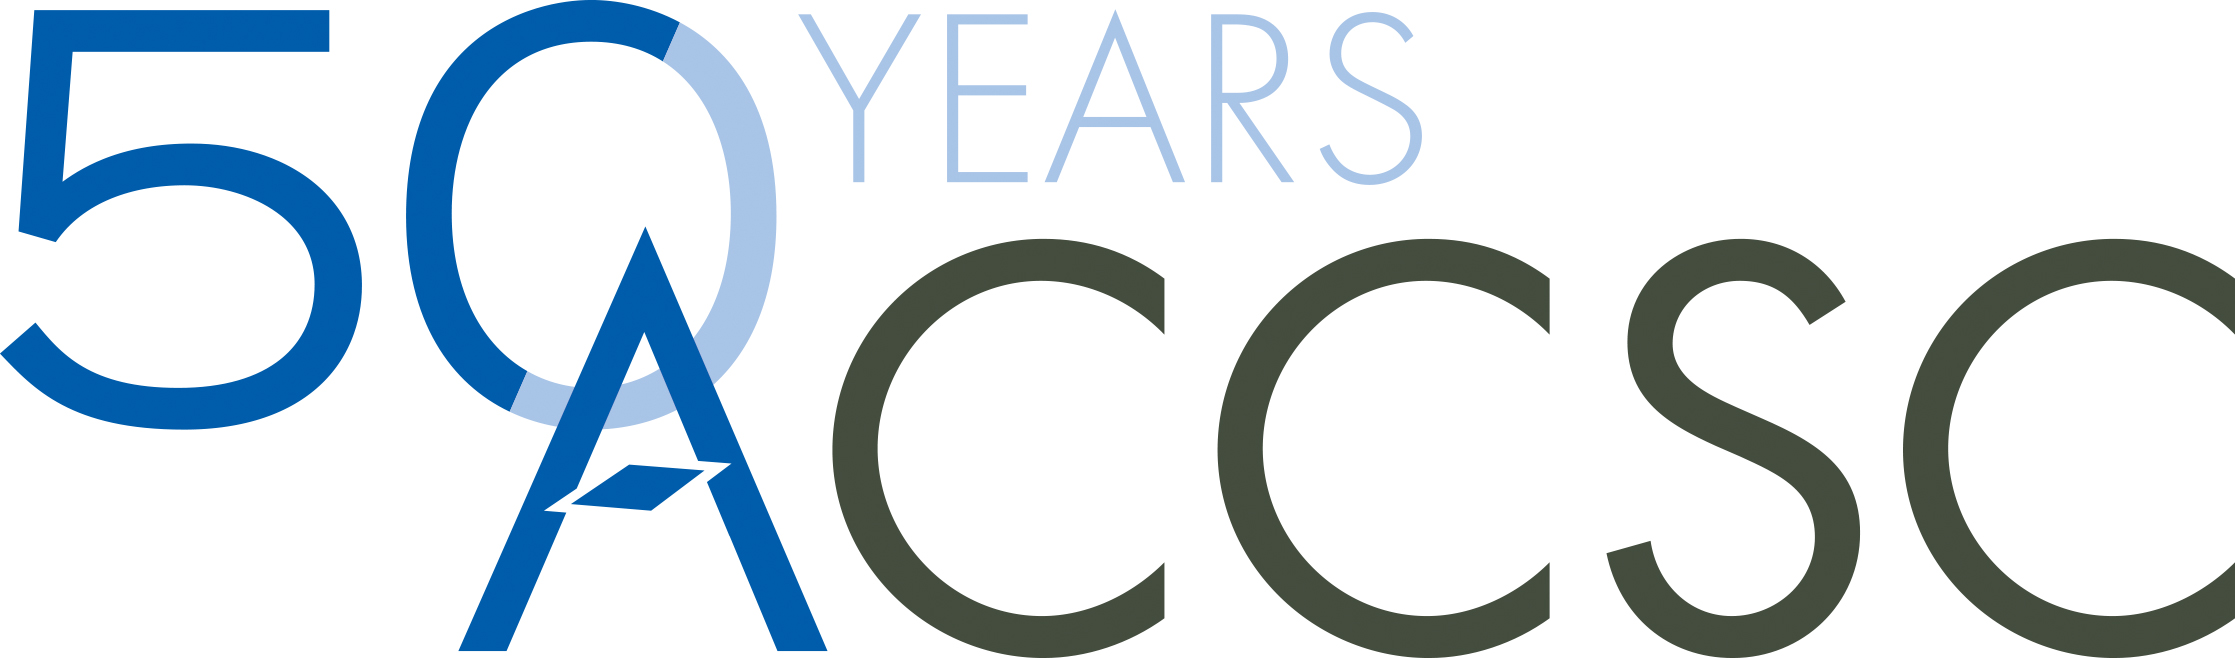 ACCSC-50th-Anniversary-Logo-Final